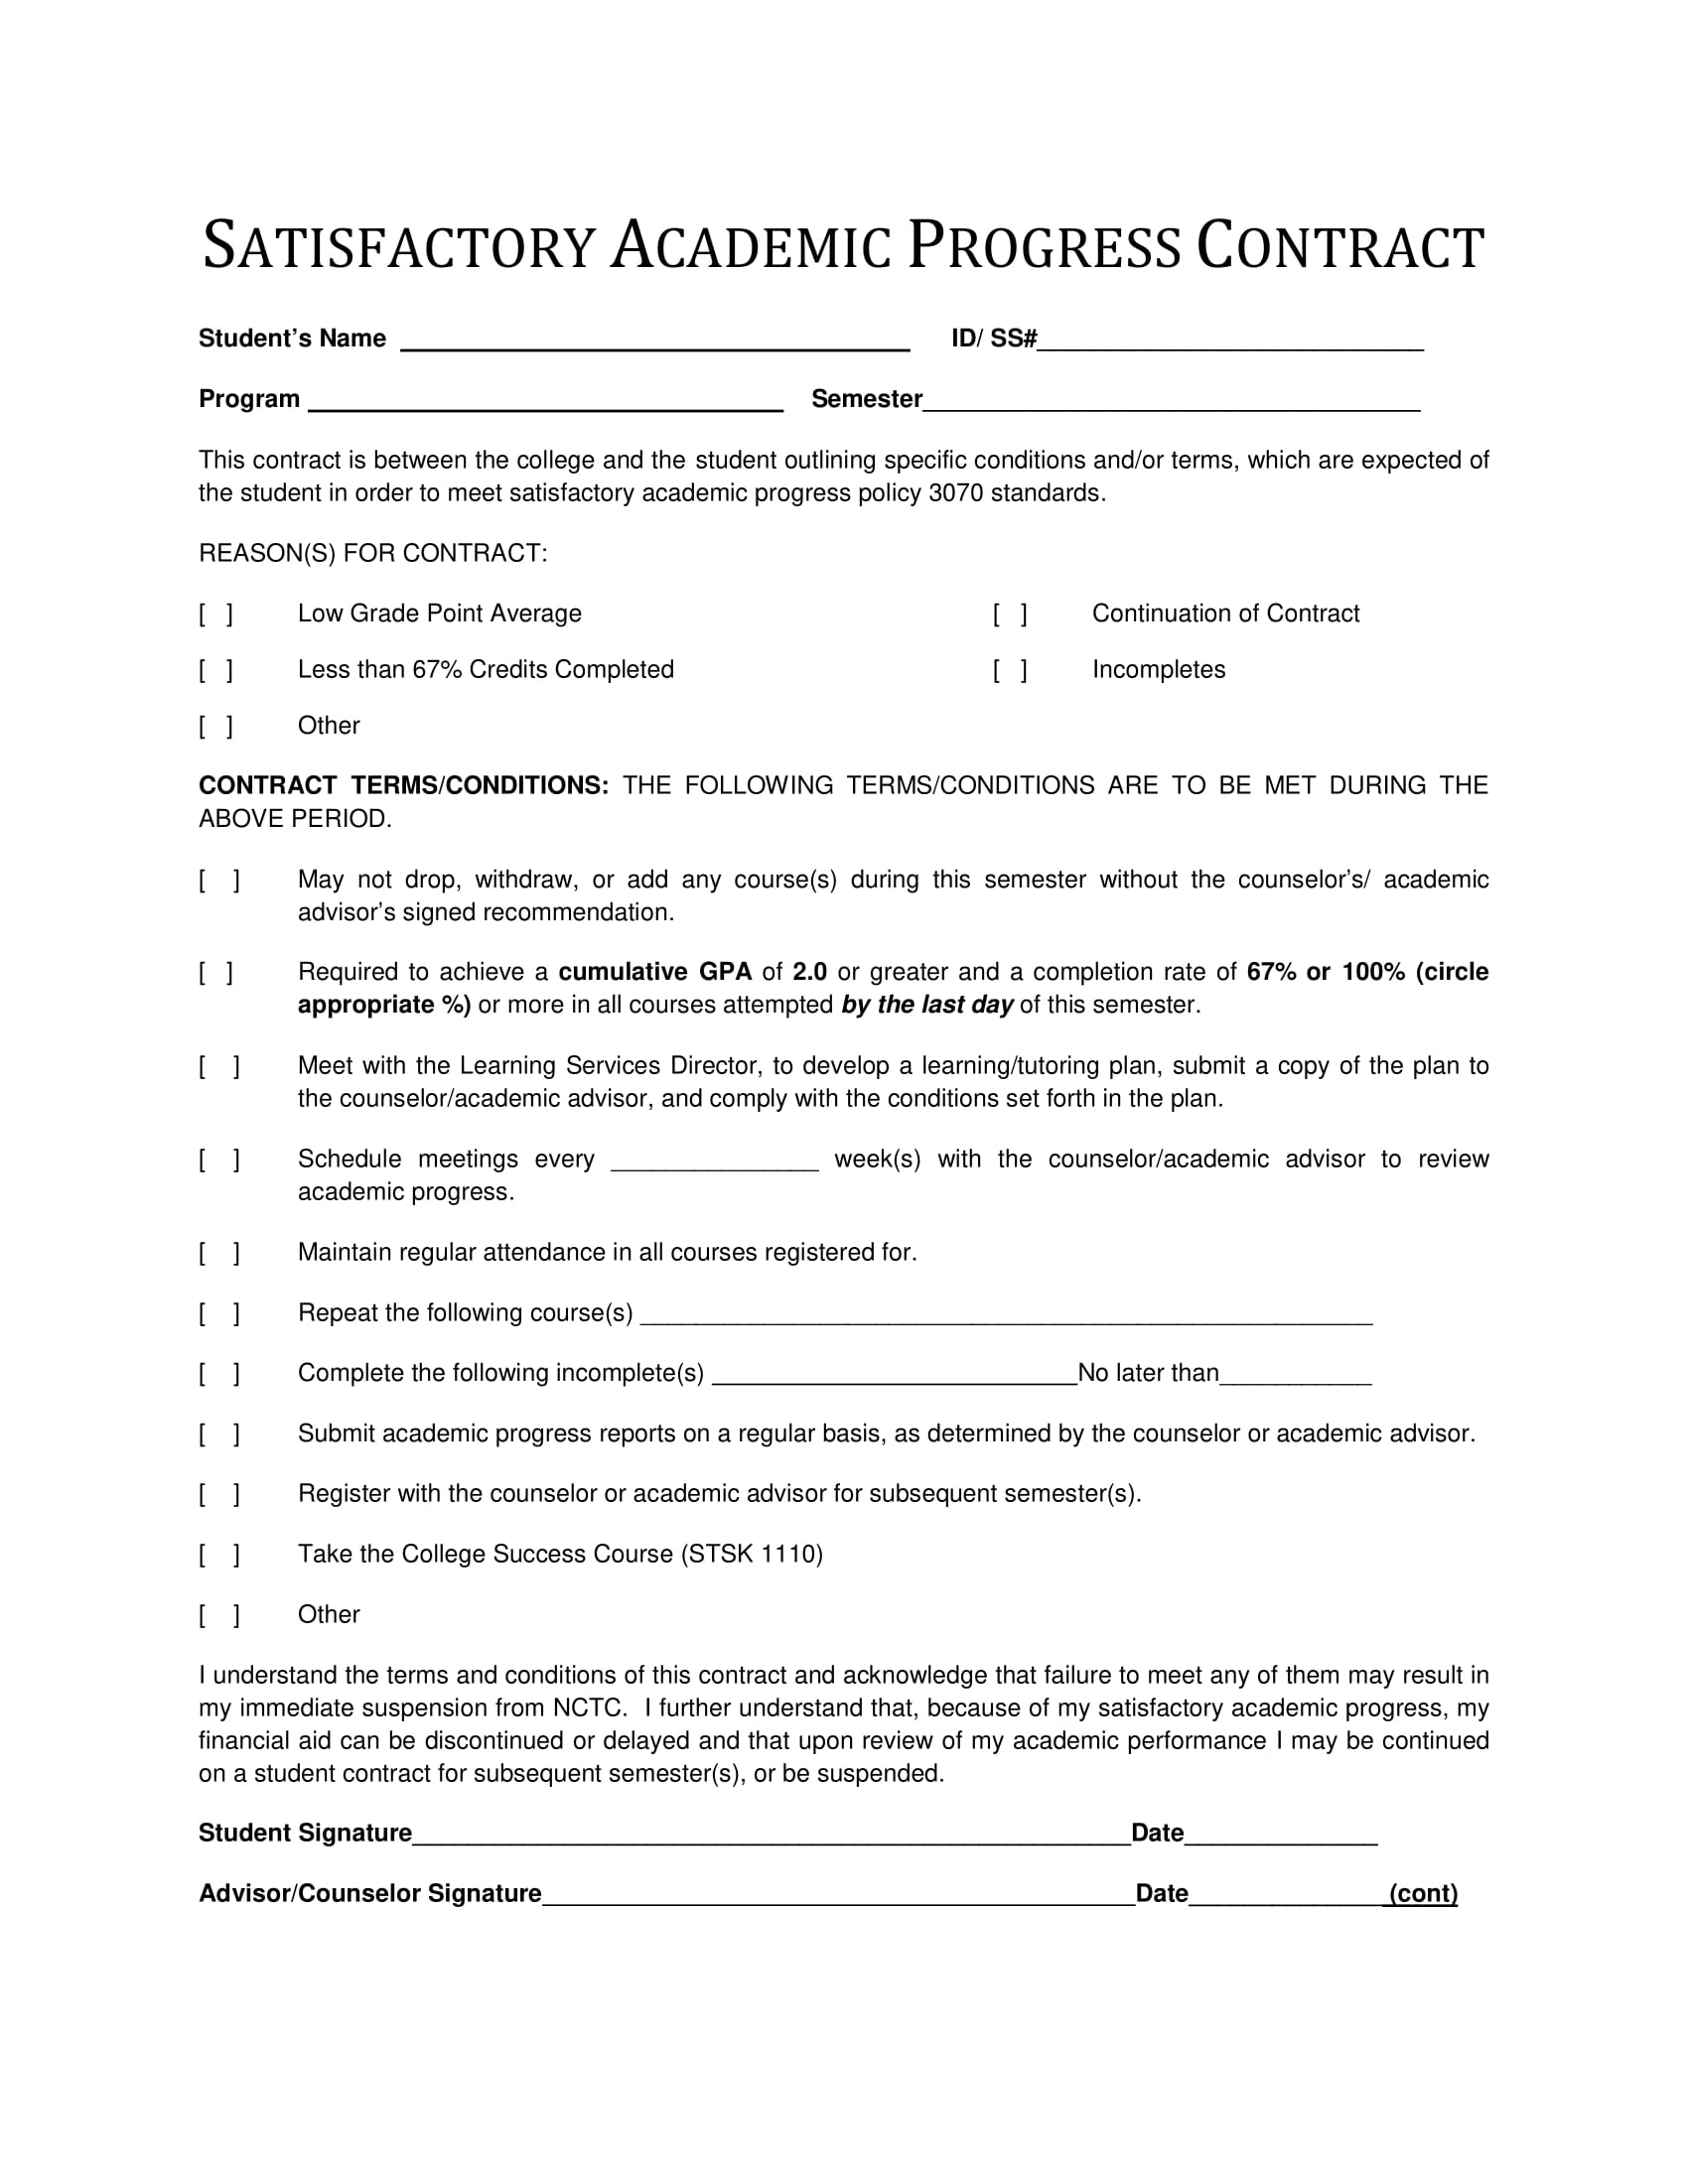 satisfactory academic progress contract for students template example 1